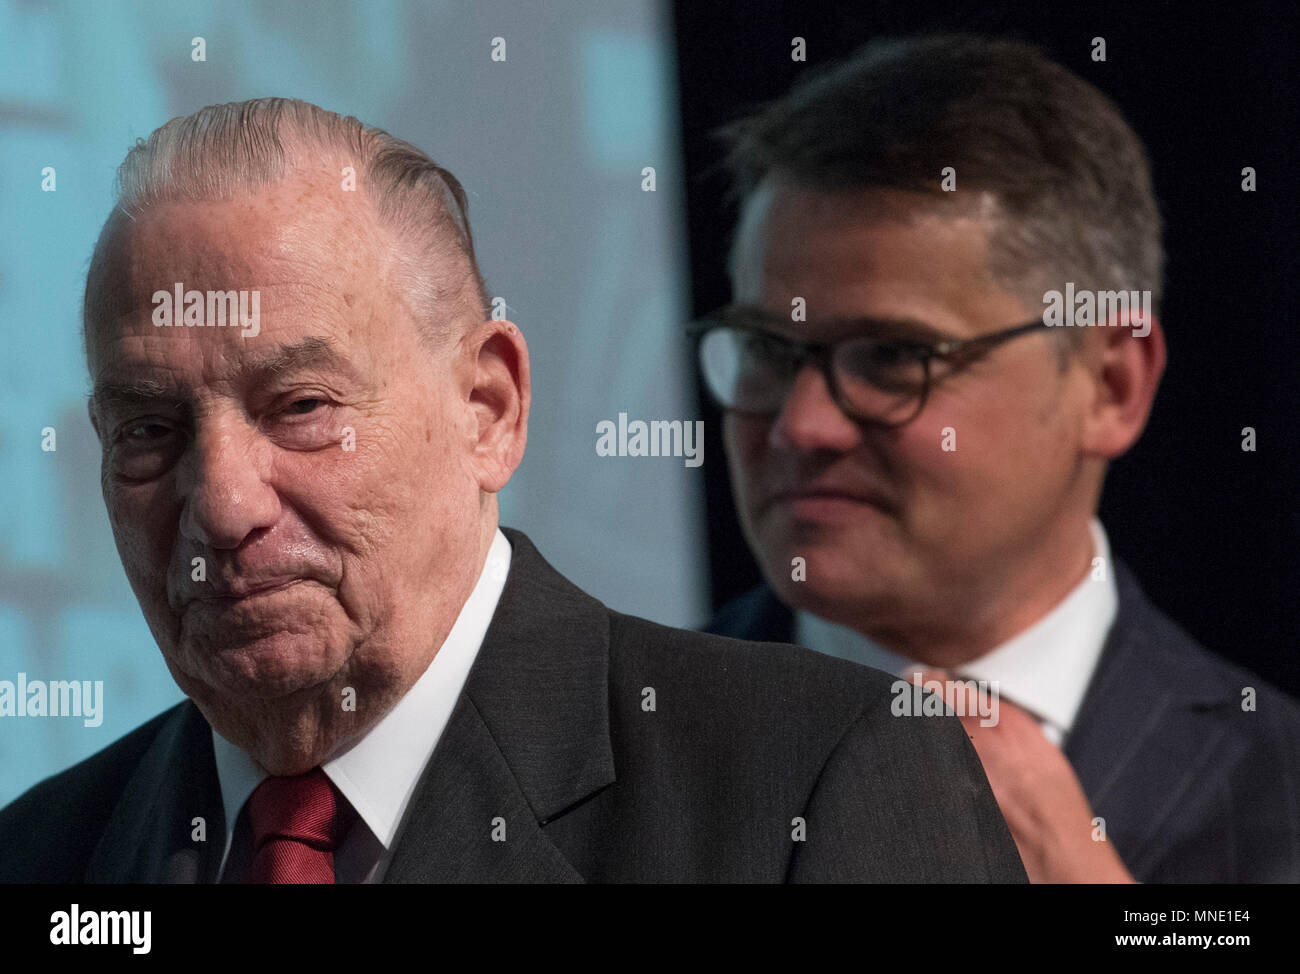 16 May 2018, Germany, Frankfurt: Hesse's Economy Minister Boris Rhein (R) of the Christian Democratic Union (CDU) and Gerhard Wiese leave the stage of the Saalbau Gallus together. Wiese is the former prosecuting counsel in the Frankfurt Auschwitz trials. The documents of the 1st Frankfurt Auschwitz trialis now a UNESCO World Heritage Document. Photo: Boris Roessler/dpa Stock Photo